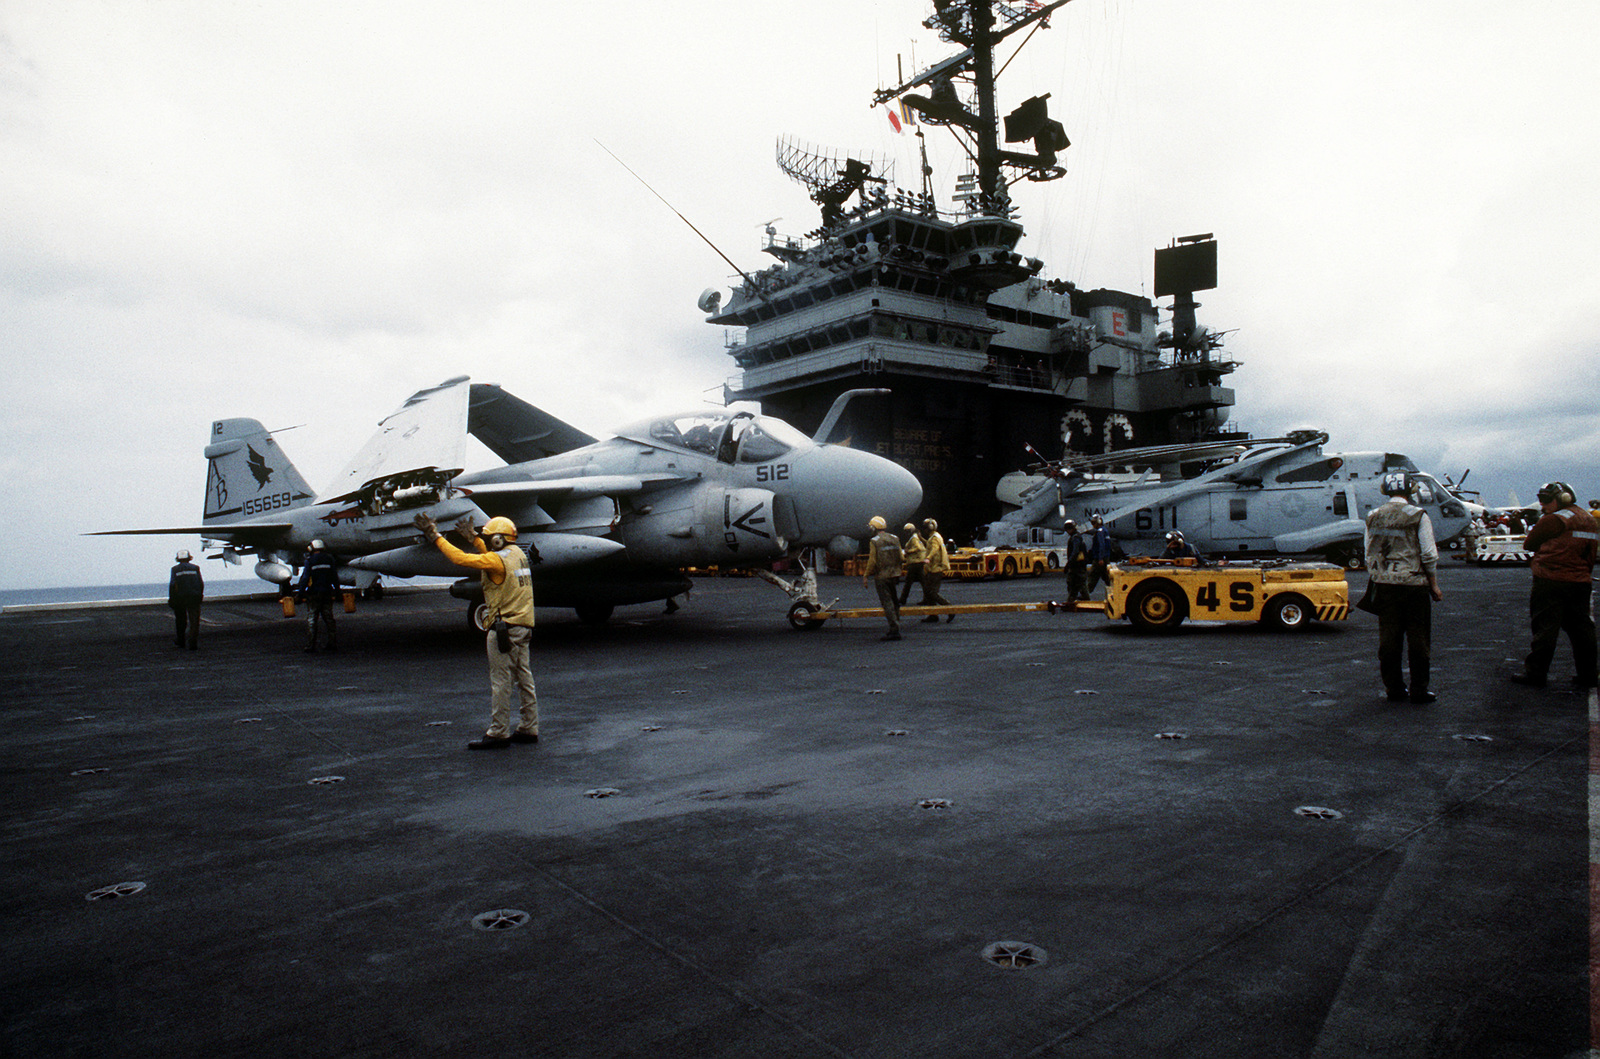 Flight deck crewmen use an MD-3A tow tractor to position an A-6E Intruder aircraft on the flight deck of the aircraft carrier USS AMERICA (CV-66) during the joint service exercise Ocean Venture '93